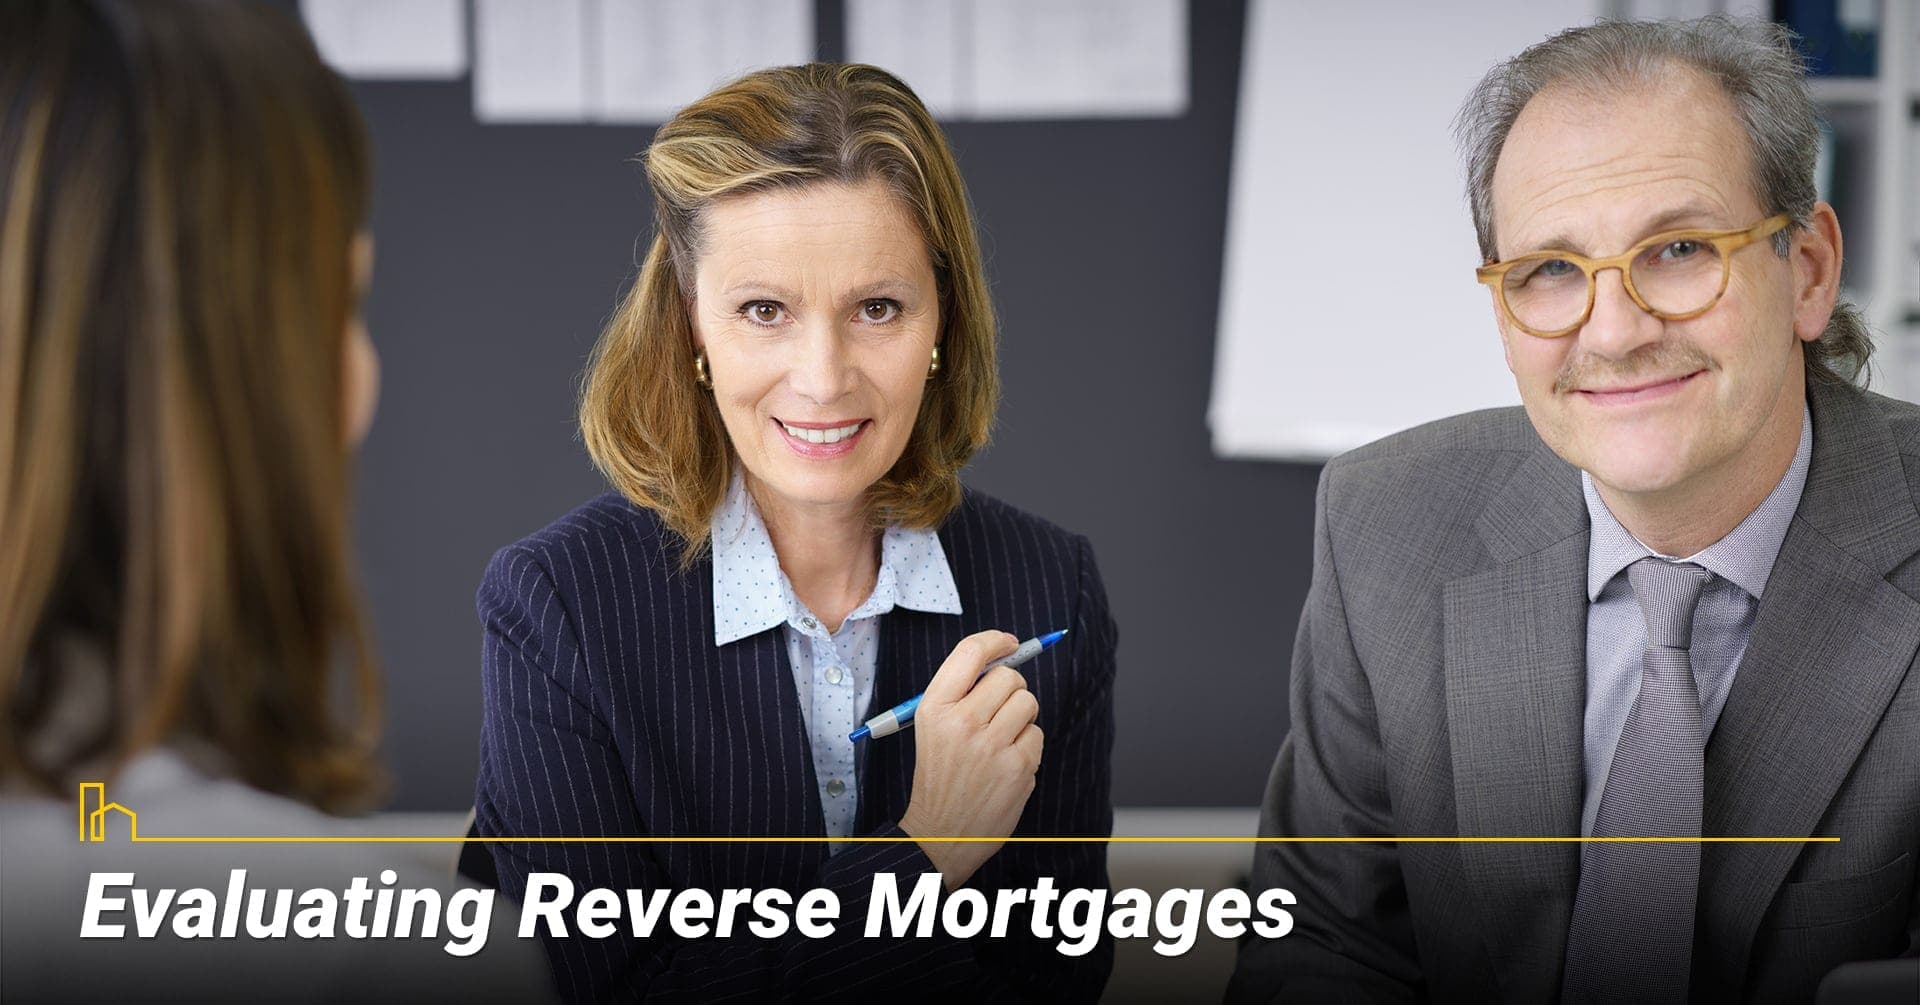 How Do I Evaluate Reverse Mortgages? factors to consider when making decision on a reverse mortgage